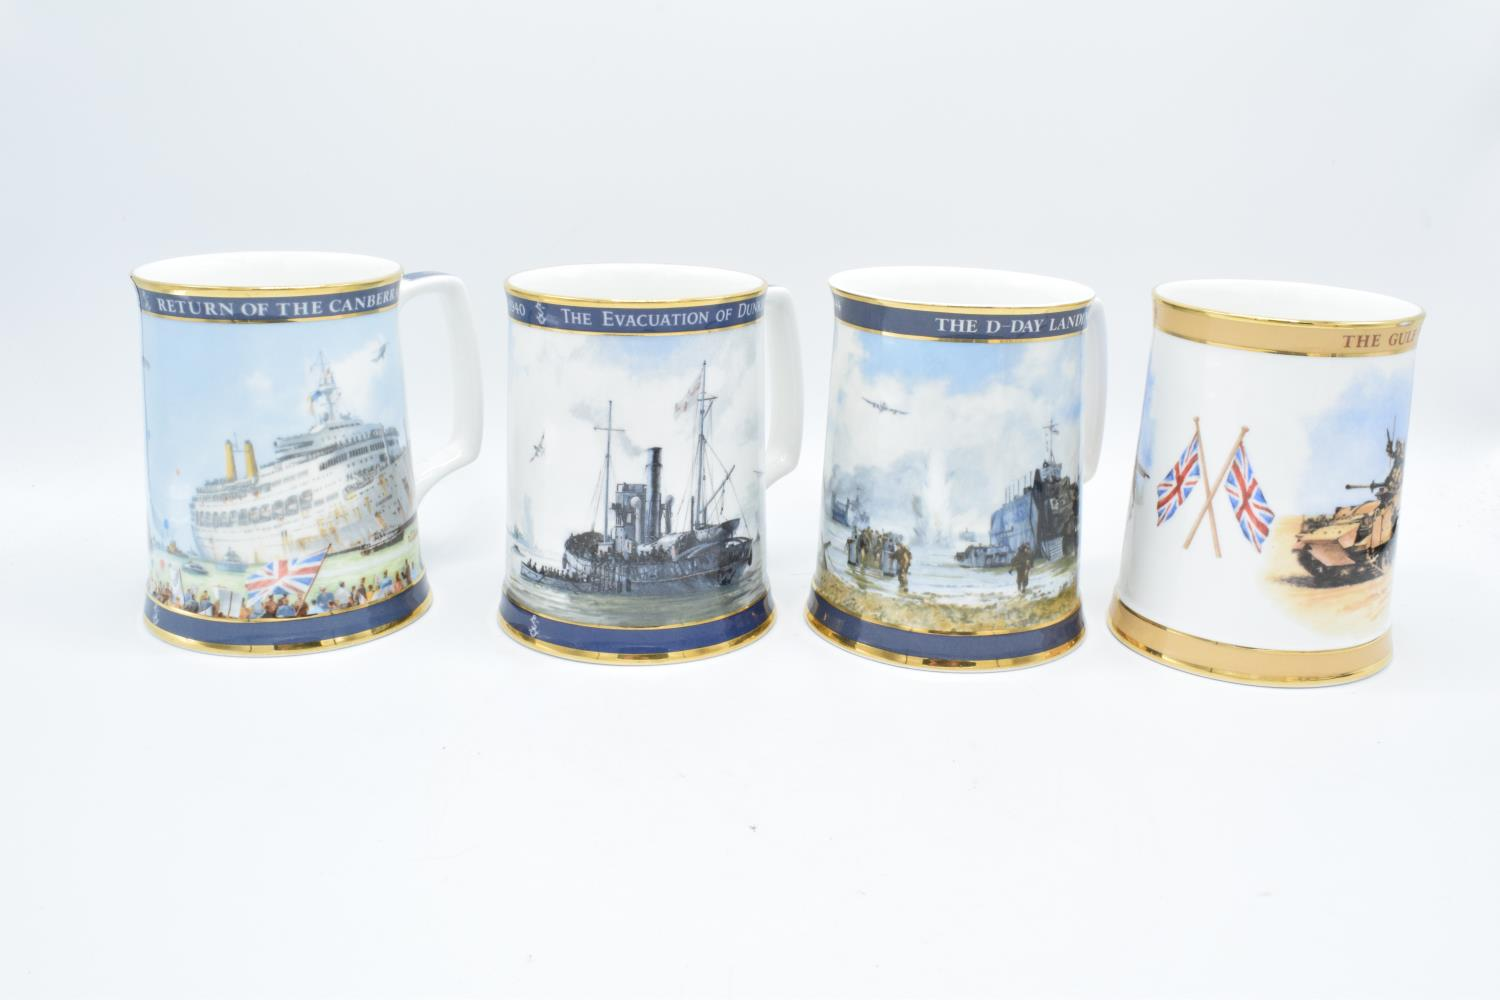 A collection of Royal Doulton tankards to commemorate Gulf War, D-day Landings, Dunkirk and the